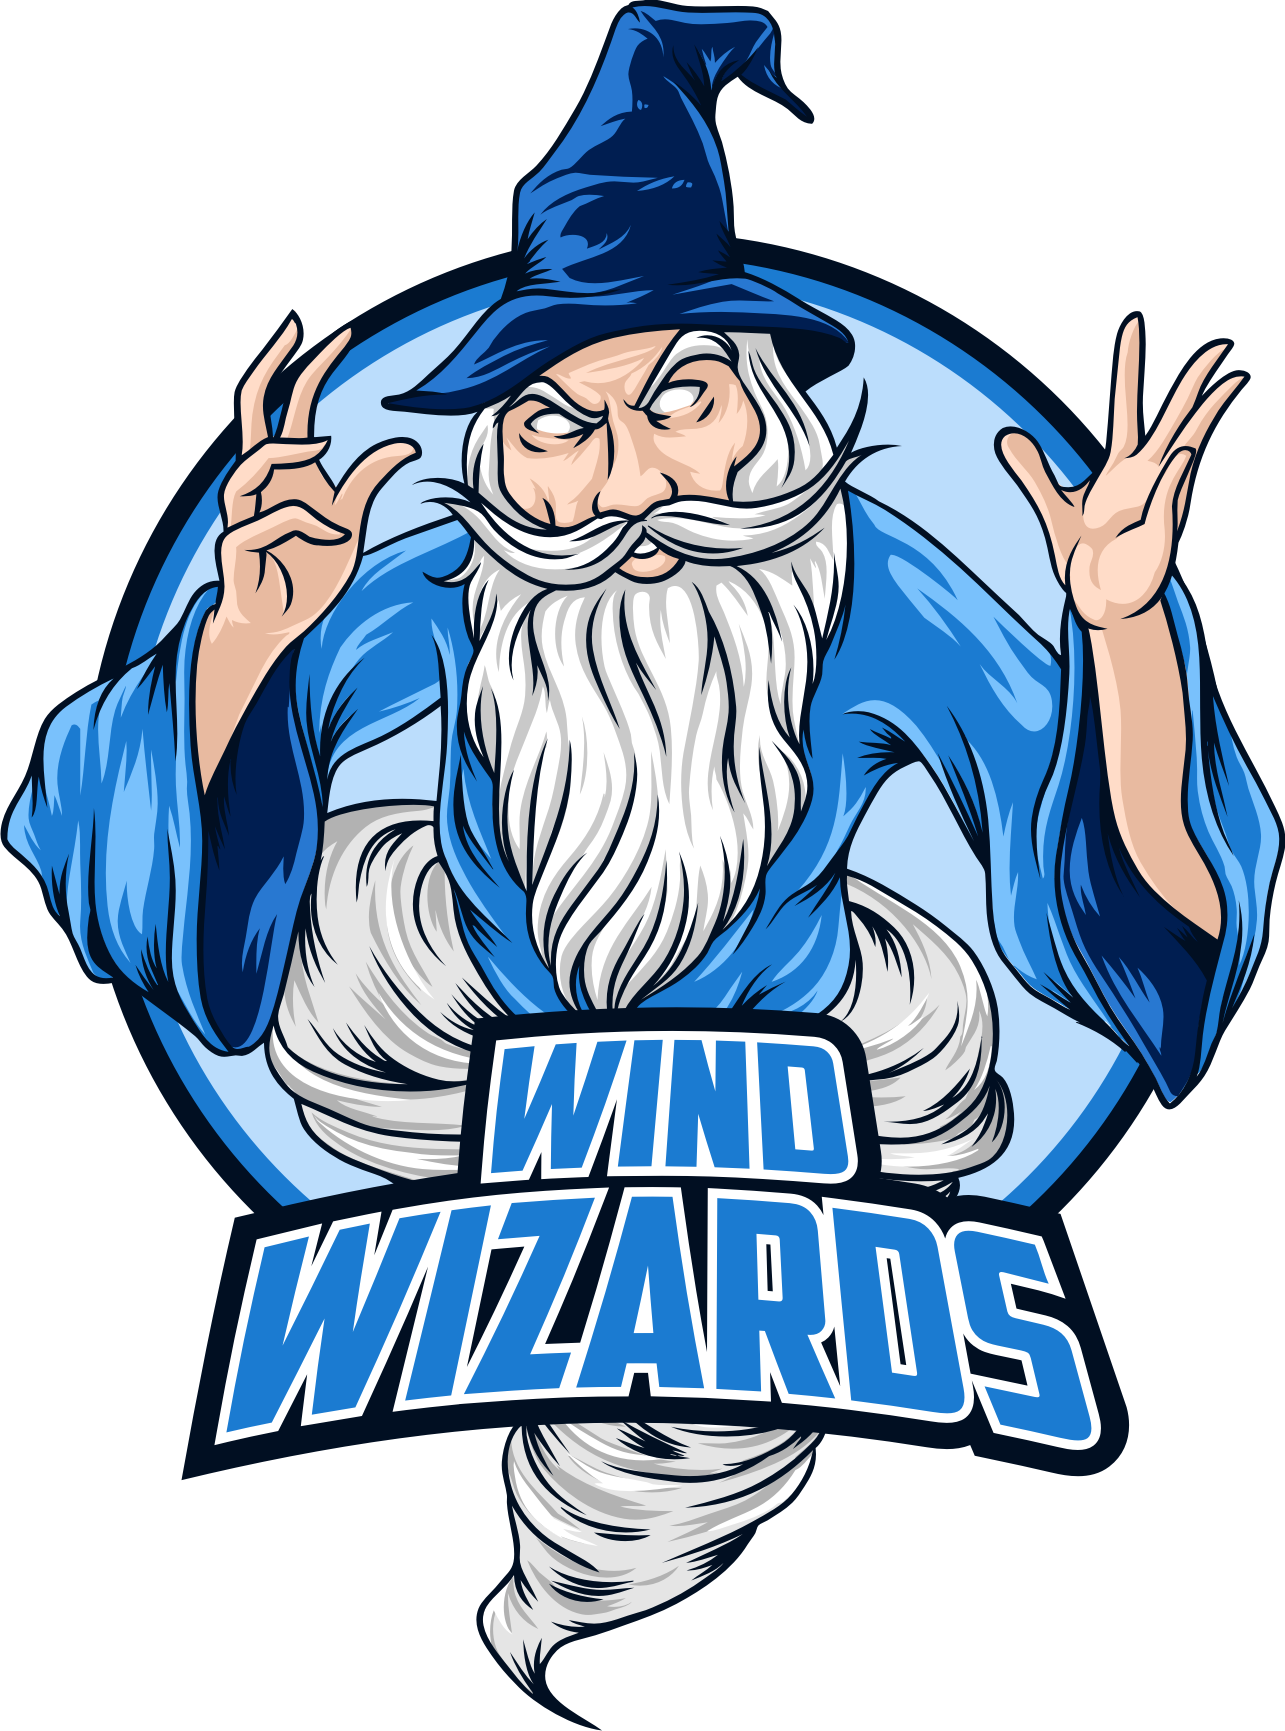 Wind Wizards - high school business team needs your great ideas!